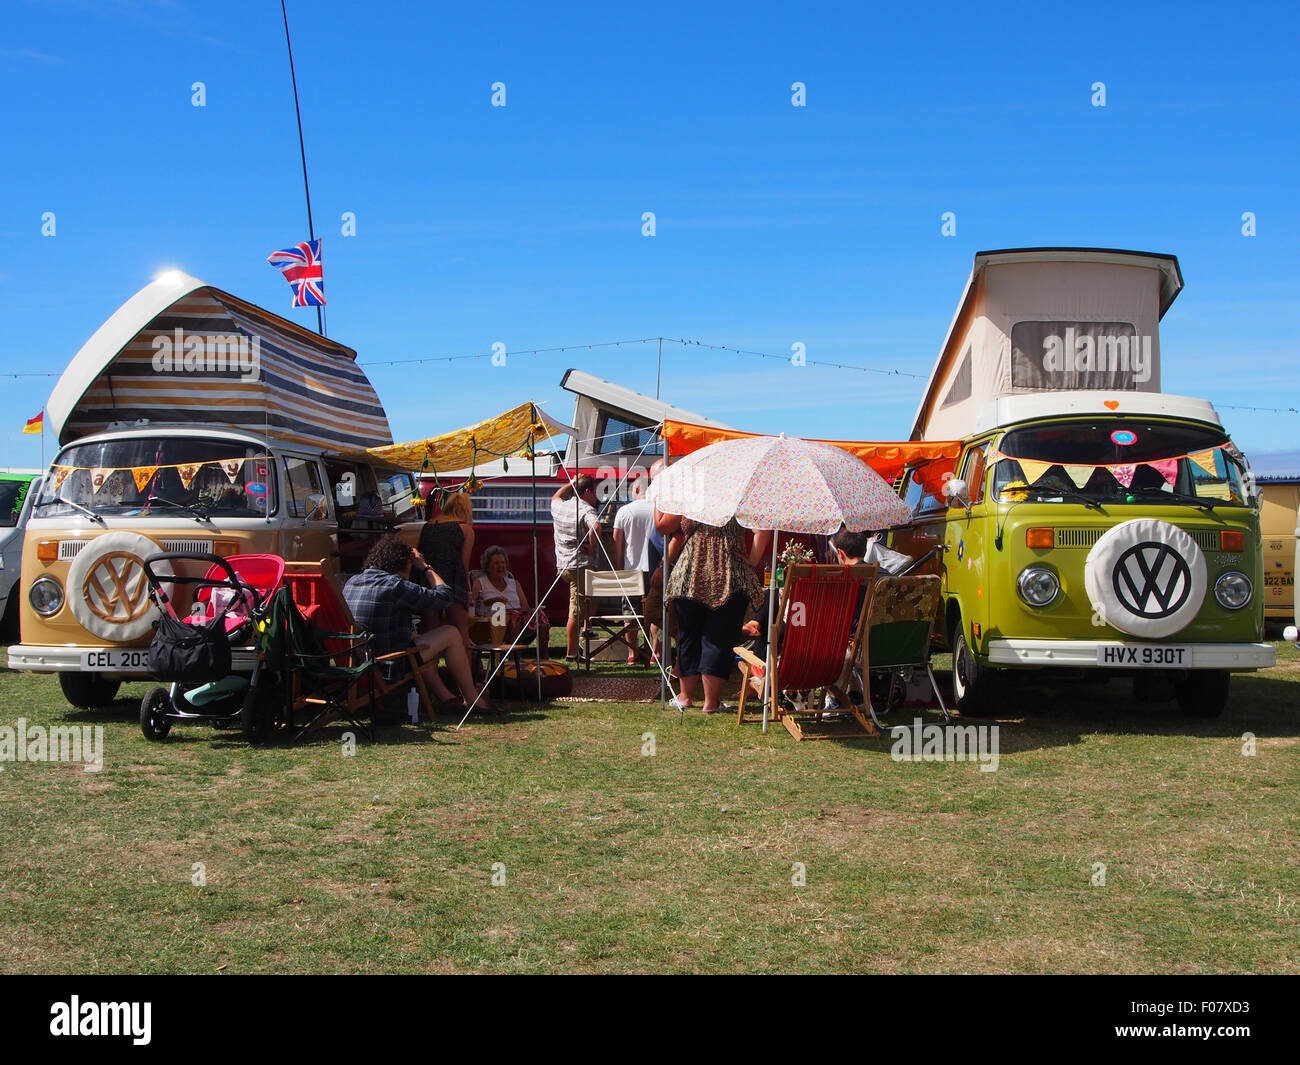 People camping outside two classic VW campervans in a field - Stock Image